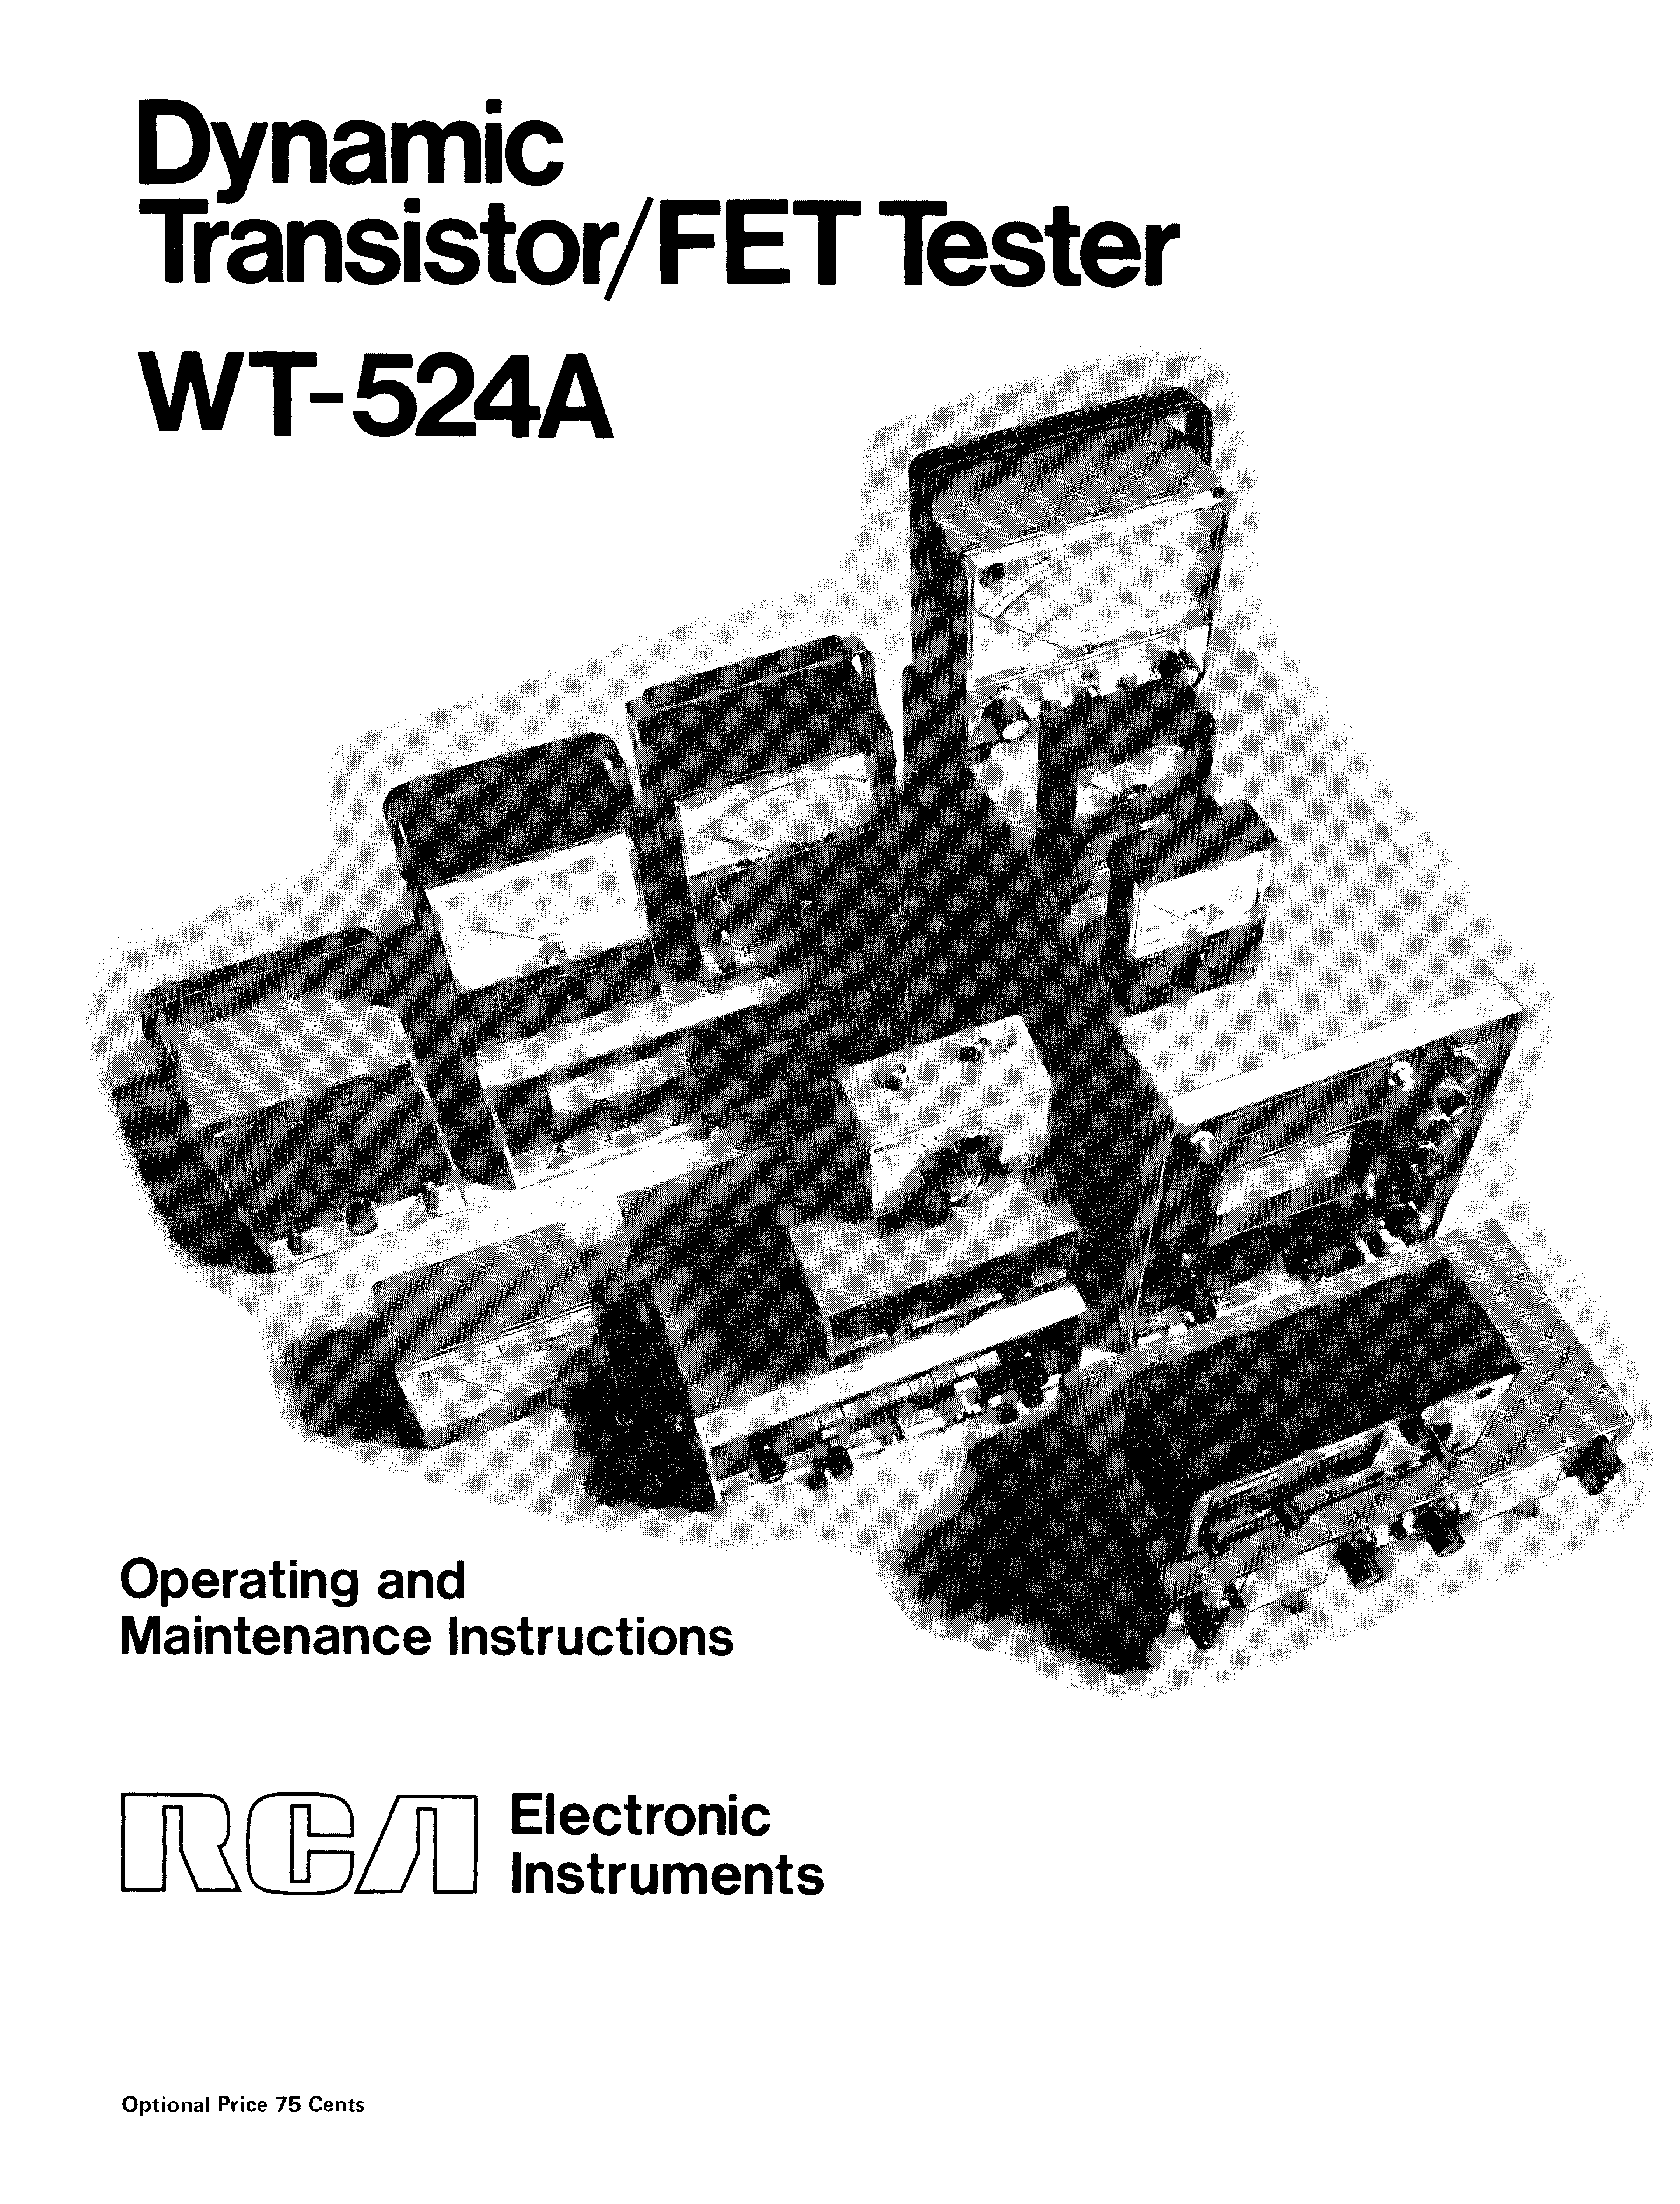 RCA WT-524A DYNAMIC TRANSISTOR FET TESTER service manual